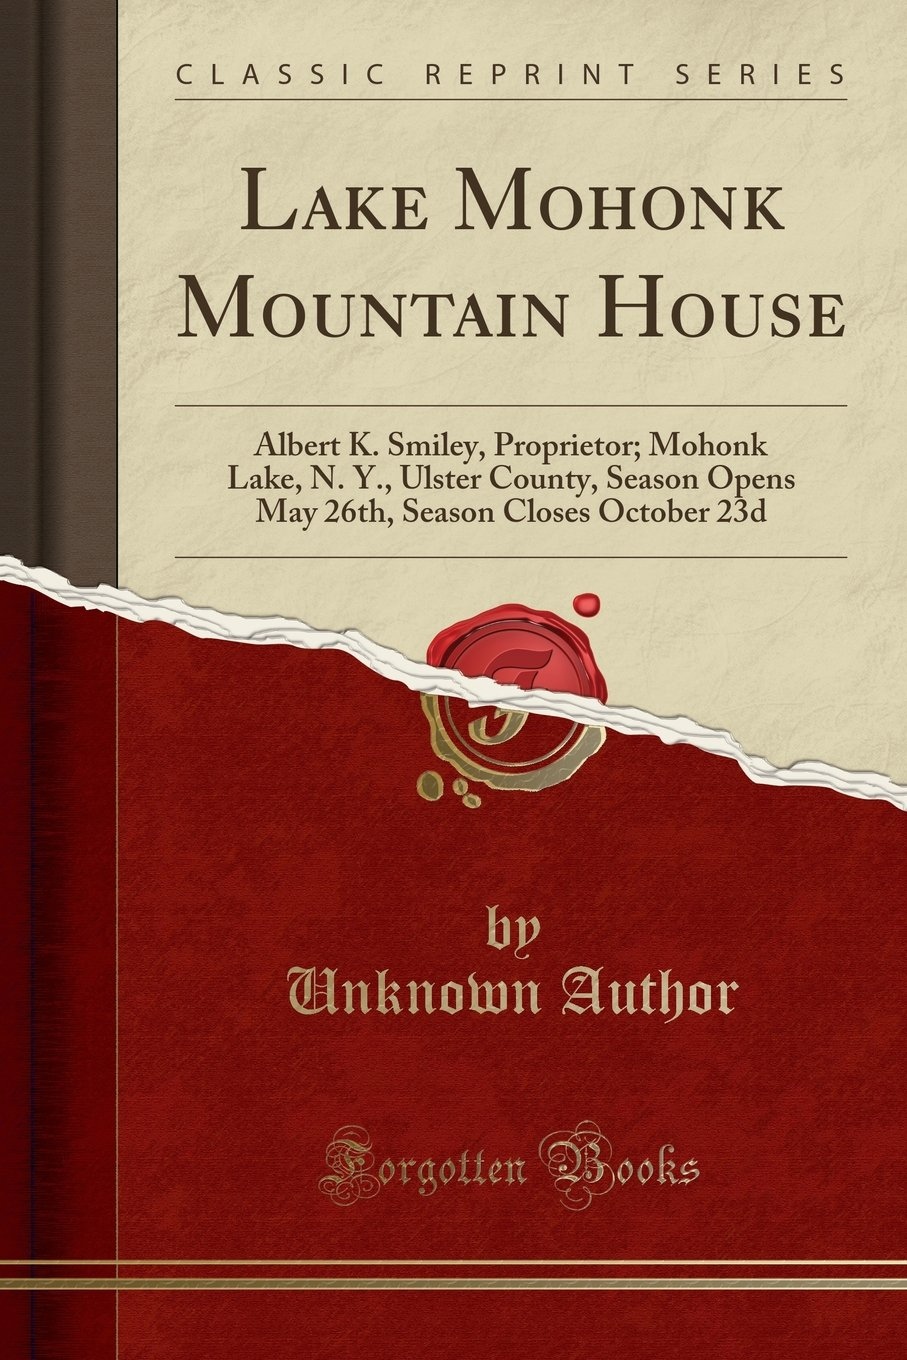 Download Lake Mohonk Mountain House: Albert K. Smiley, Proprietor; Mohonk Lake, N. Y., Ulster County, Season Opens May 26th, Season Closes October 23d (Classic Reprint) pdf epub